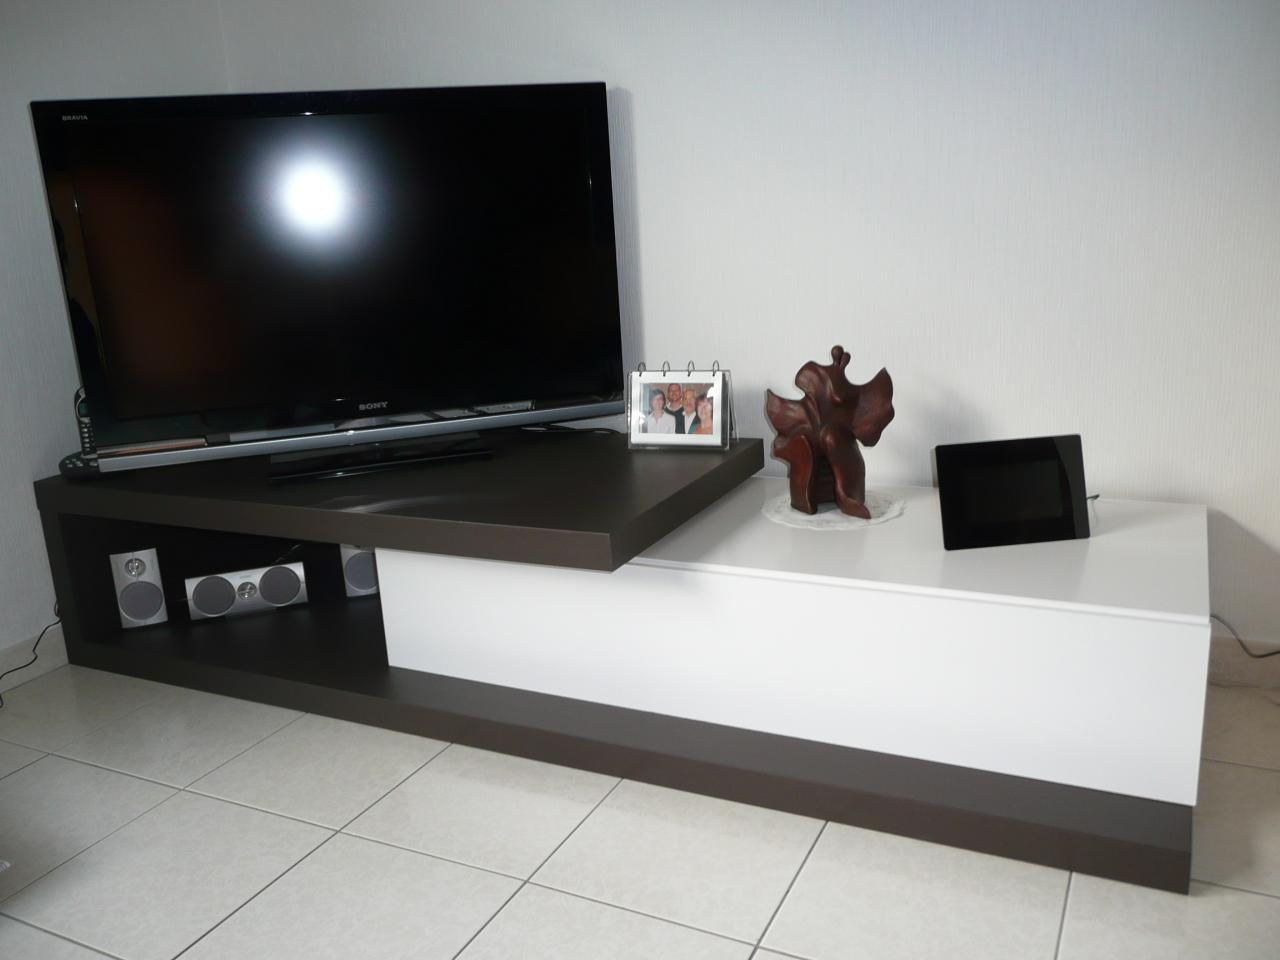 Table Tv En Coin - Meuble Tv De Coin Meuble Tv 140 Newbalancesoldes[mjhdah]http://kirafes.com/images/table-basse-largeur-40-cm-13-meuble-tv-ikea-lack-bouleau-meuble-t233l233-1600×1710.jpg